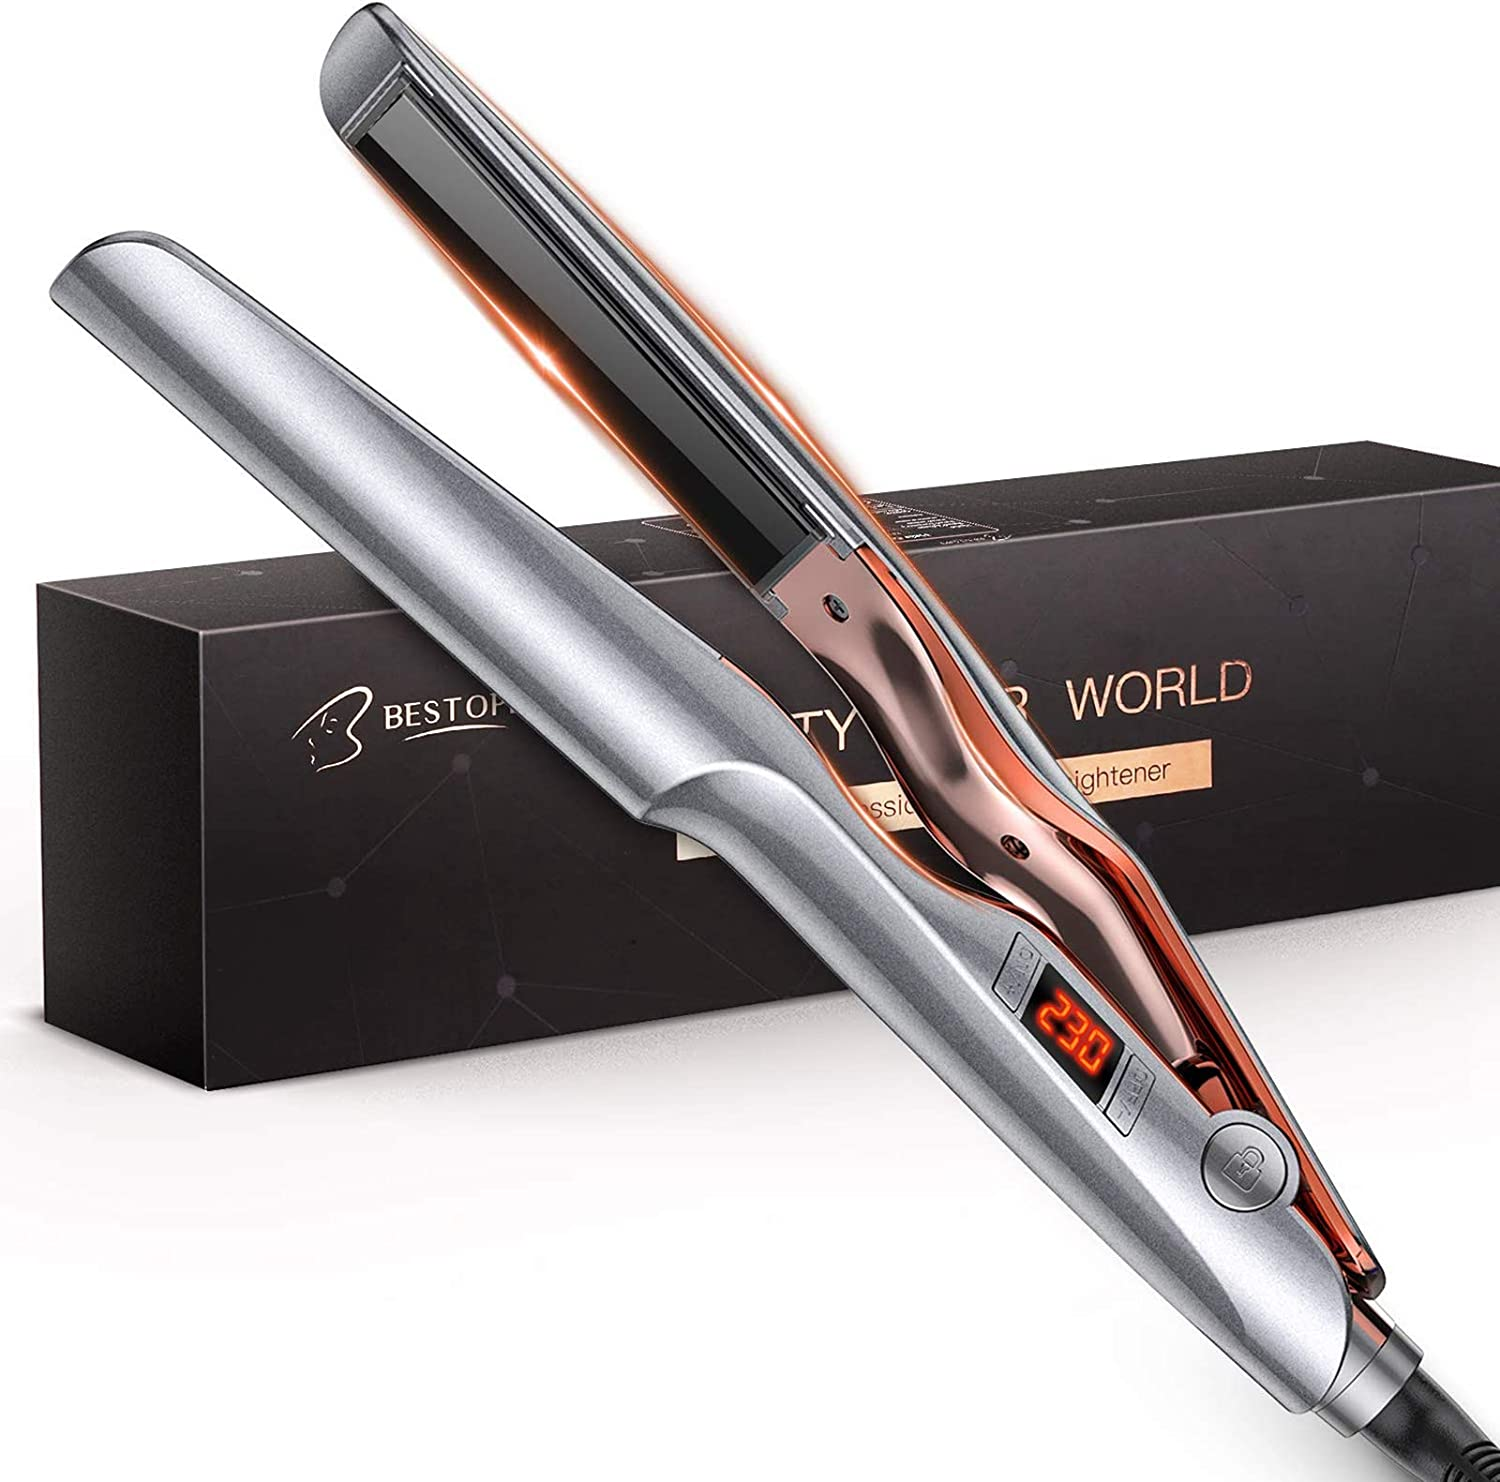 BESTOPE 2 IN 1 Flat Iron Hair Straightener and Curler, Ceramic Hair Iron with LCD Digital Display & Auto Shut-Off 53% OFF £15.99 @ Amazon